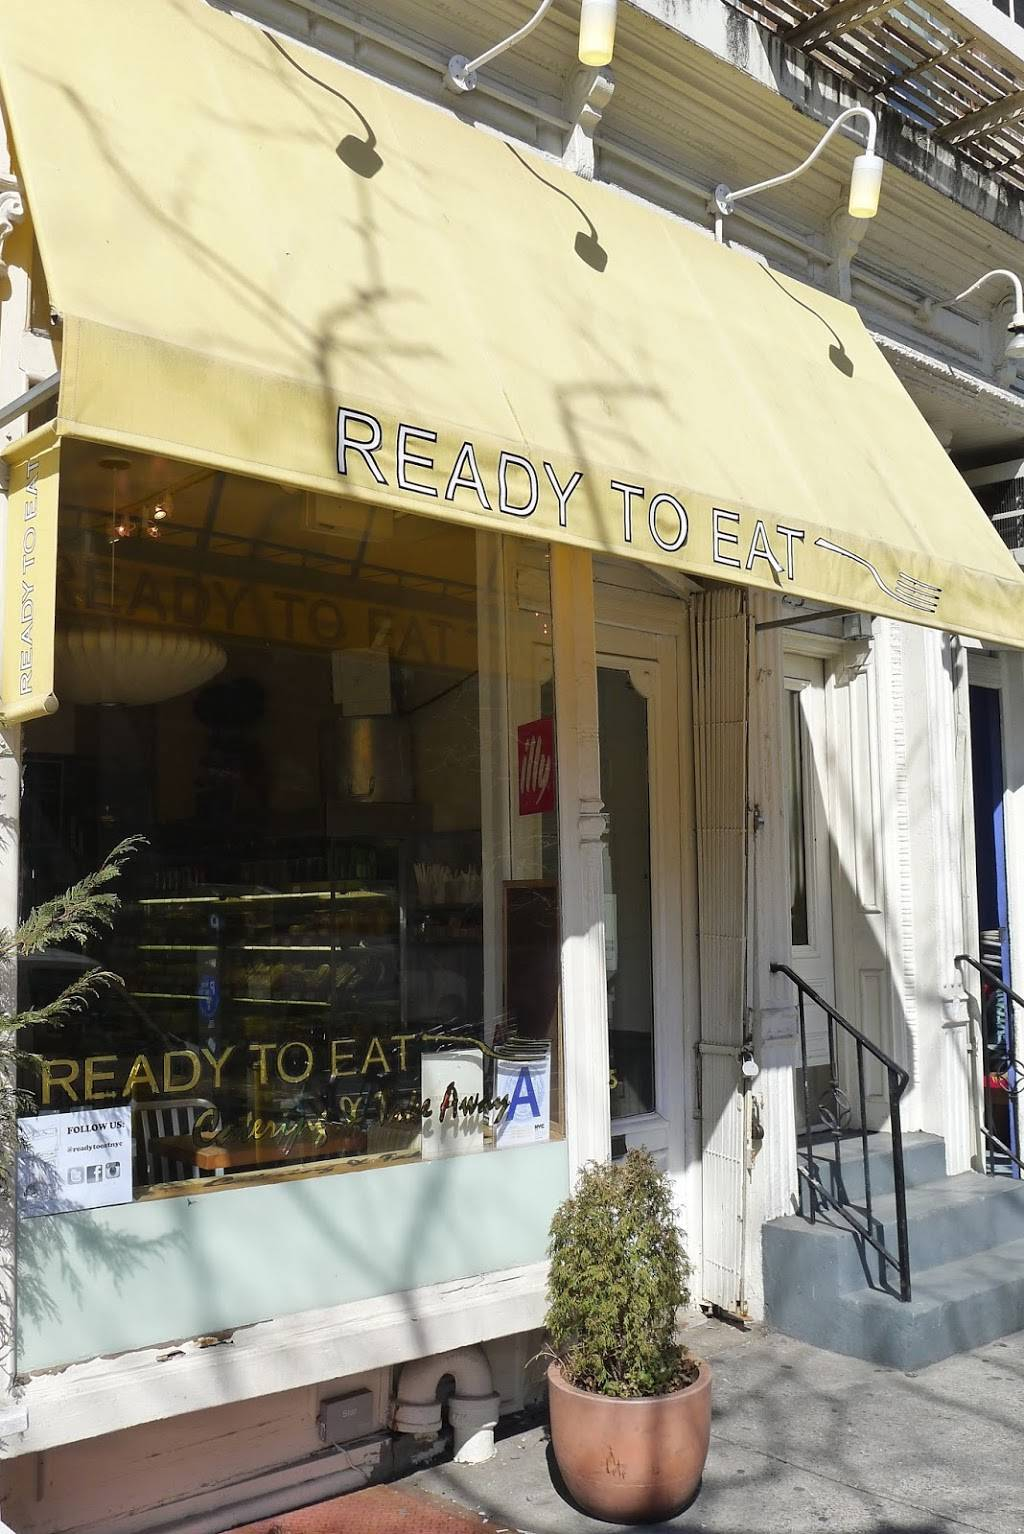 Ready to Eat | meal delivery | 525 Hudson St, New York, NY 10014, USA | 2122291013 OR +1 212-229-1013